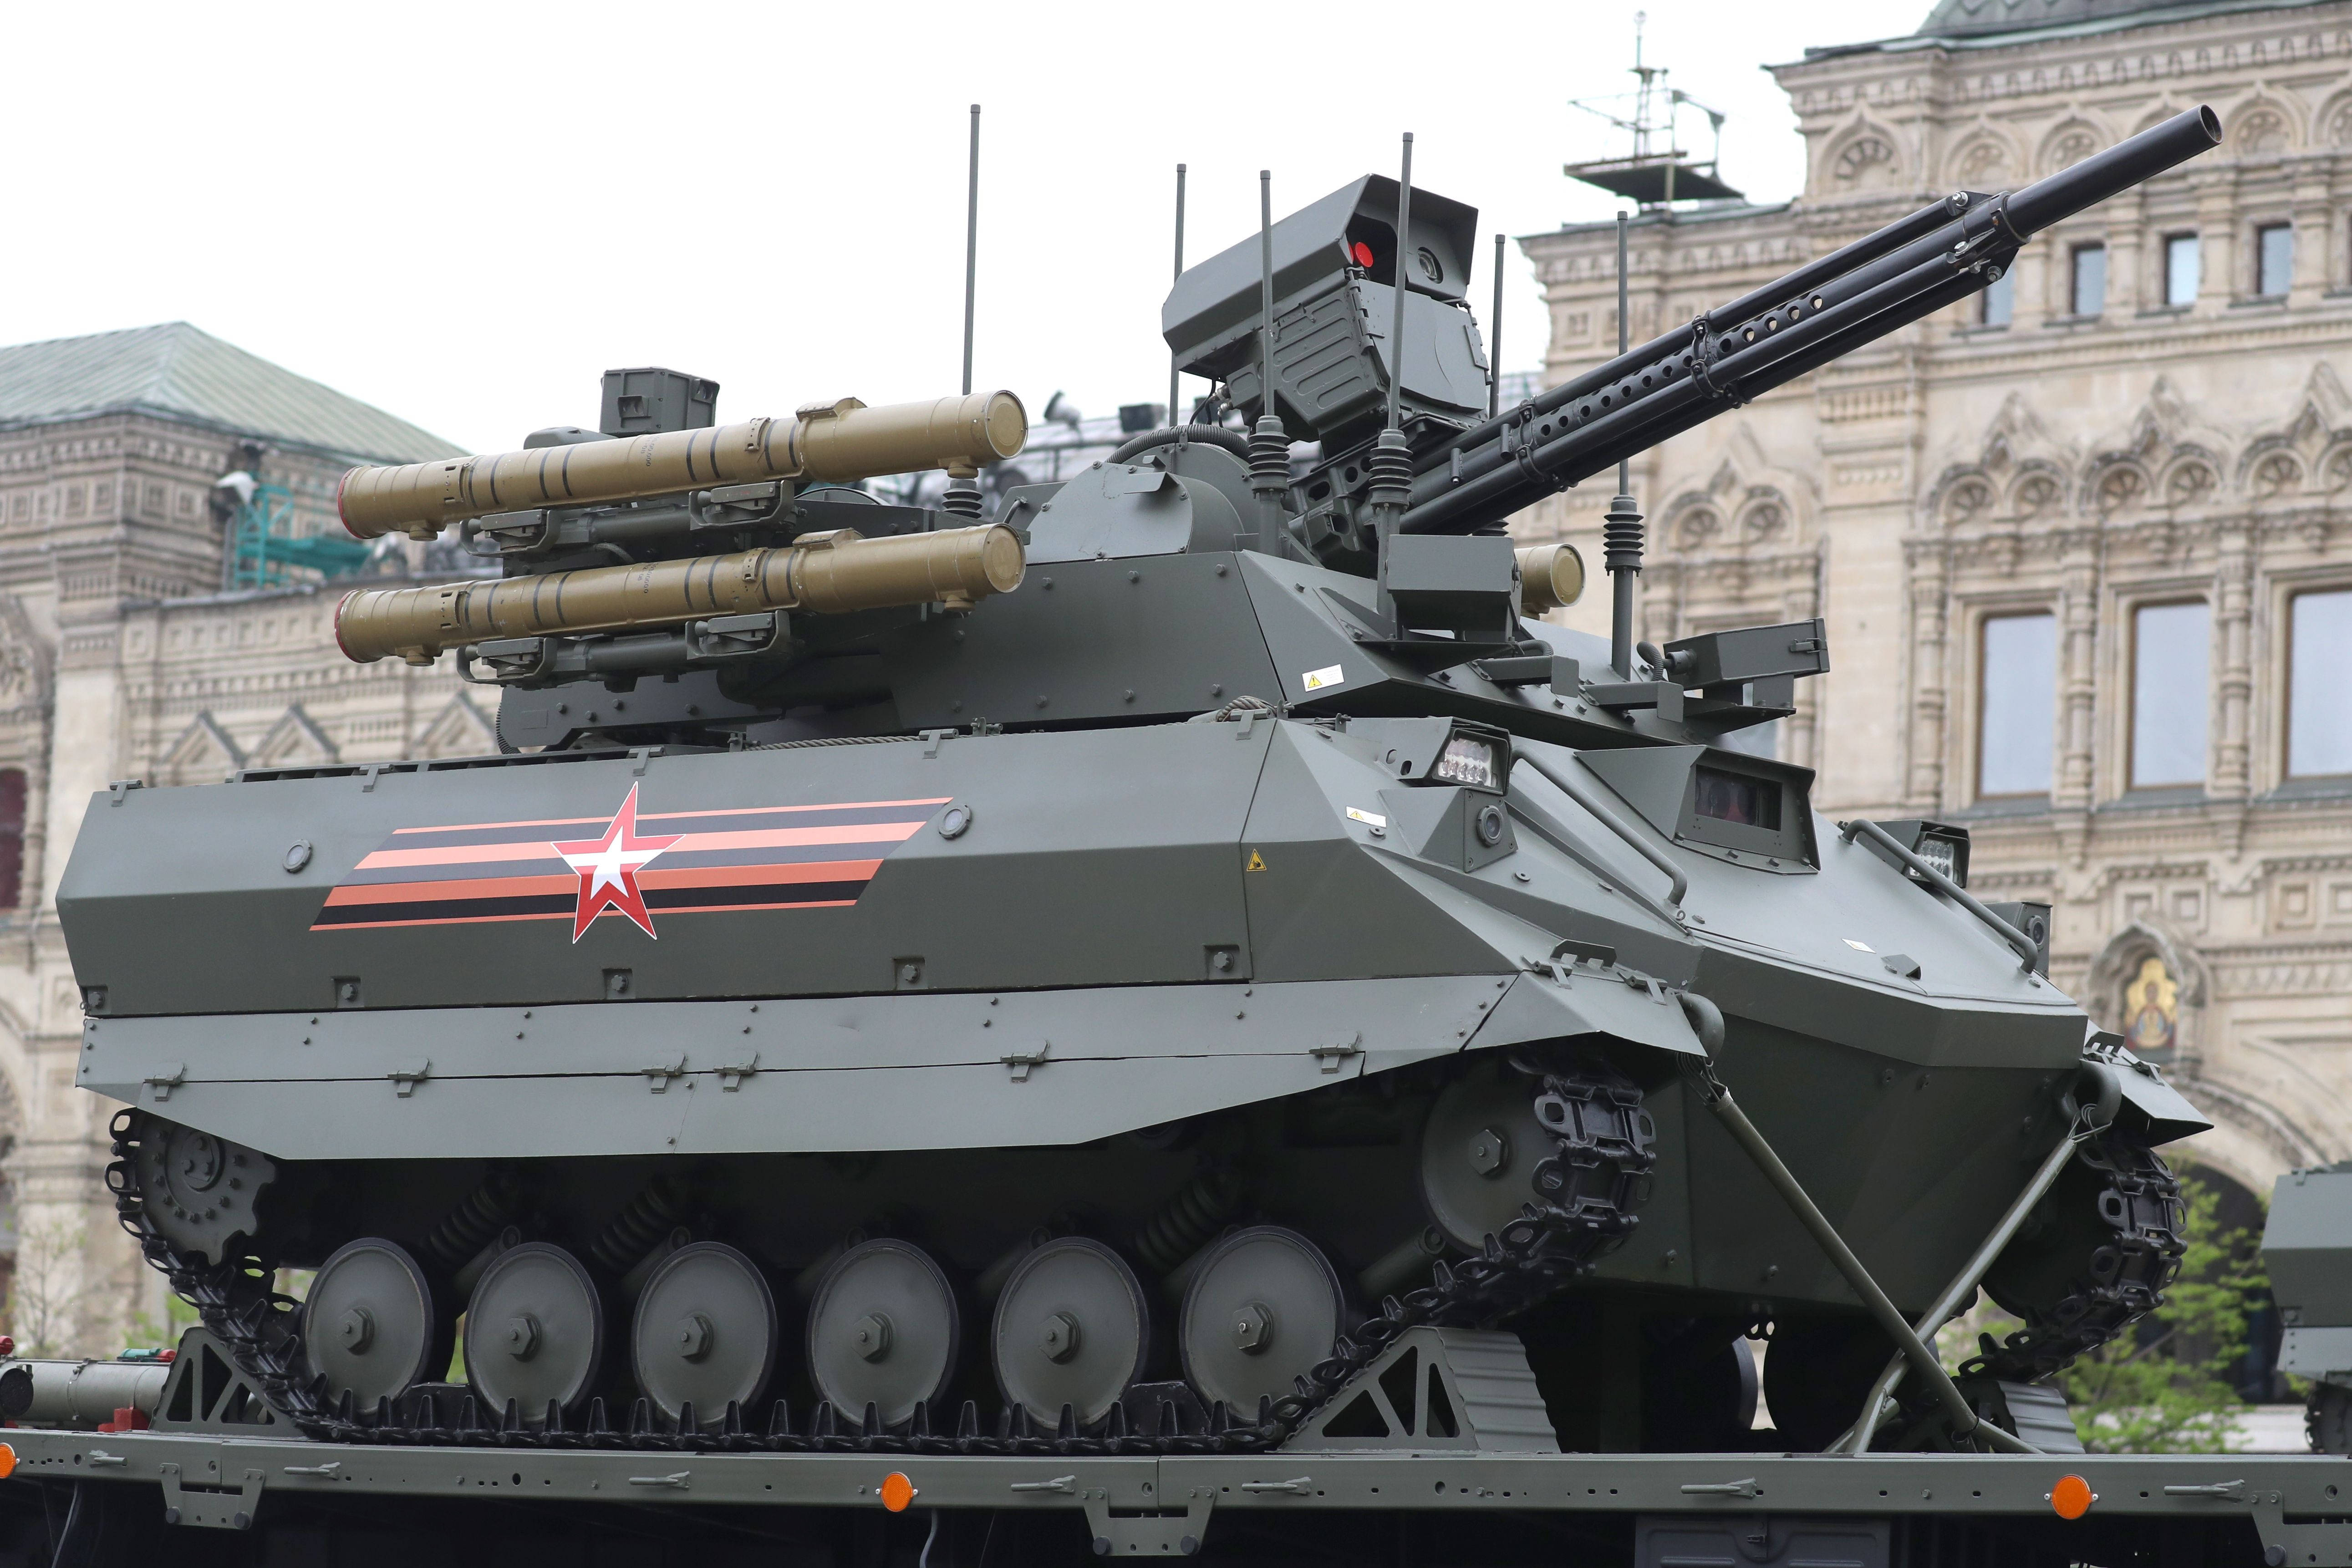 Russia's Tank Drone Performed Poorly in Syria